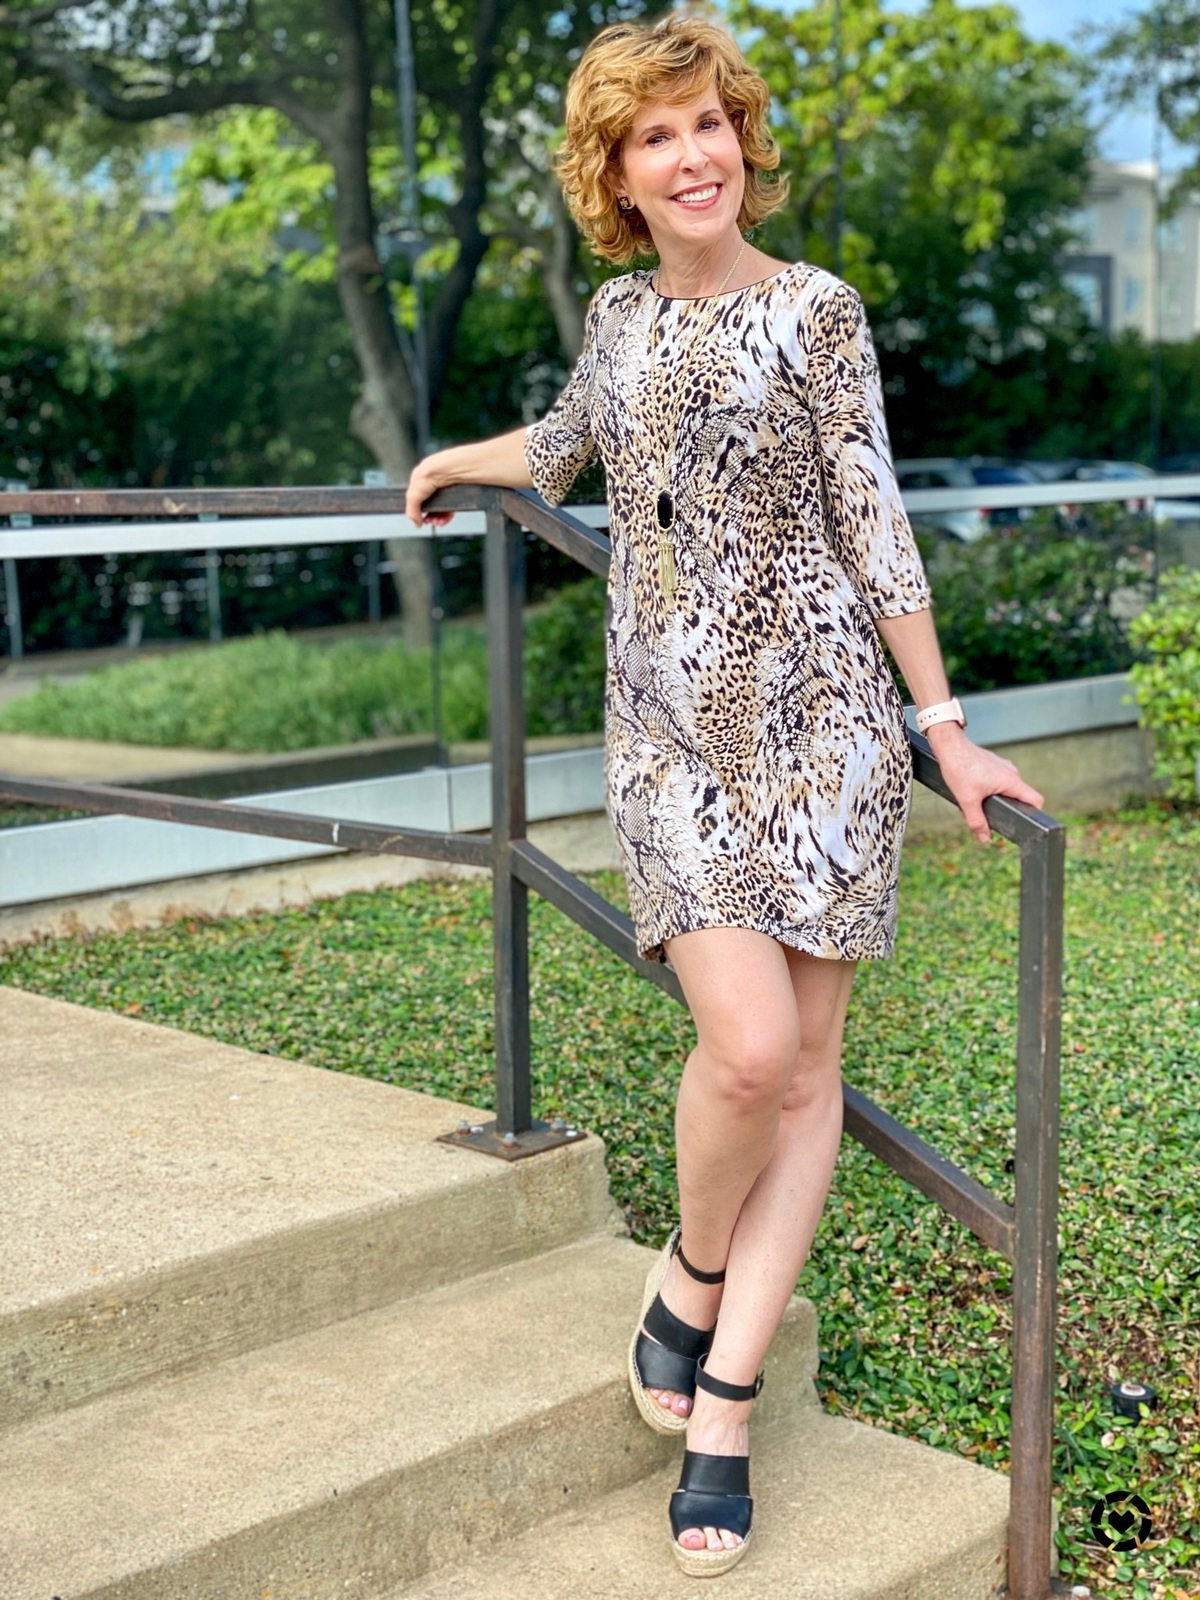 woman in animal print dress leaning against a stair railing in front of an office building